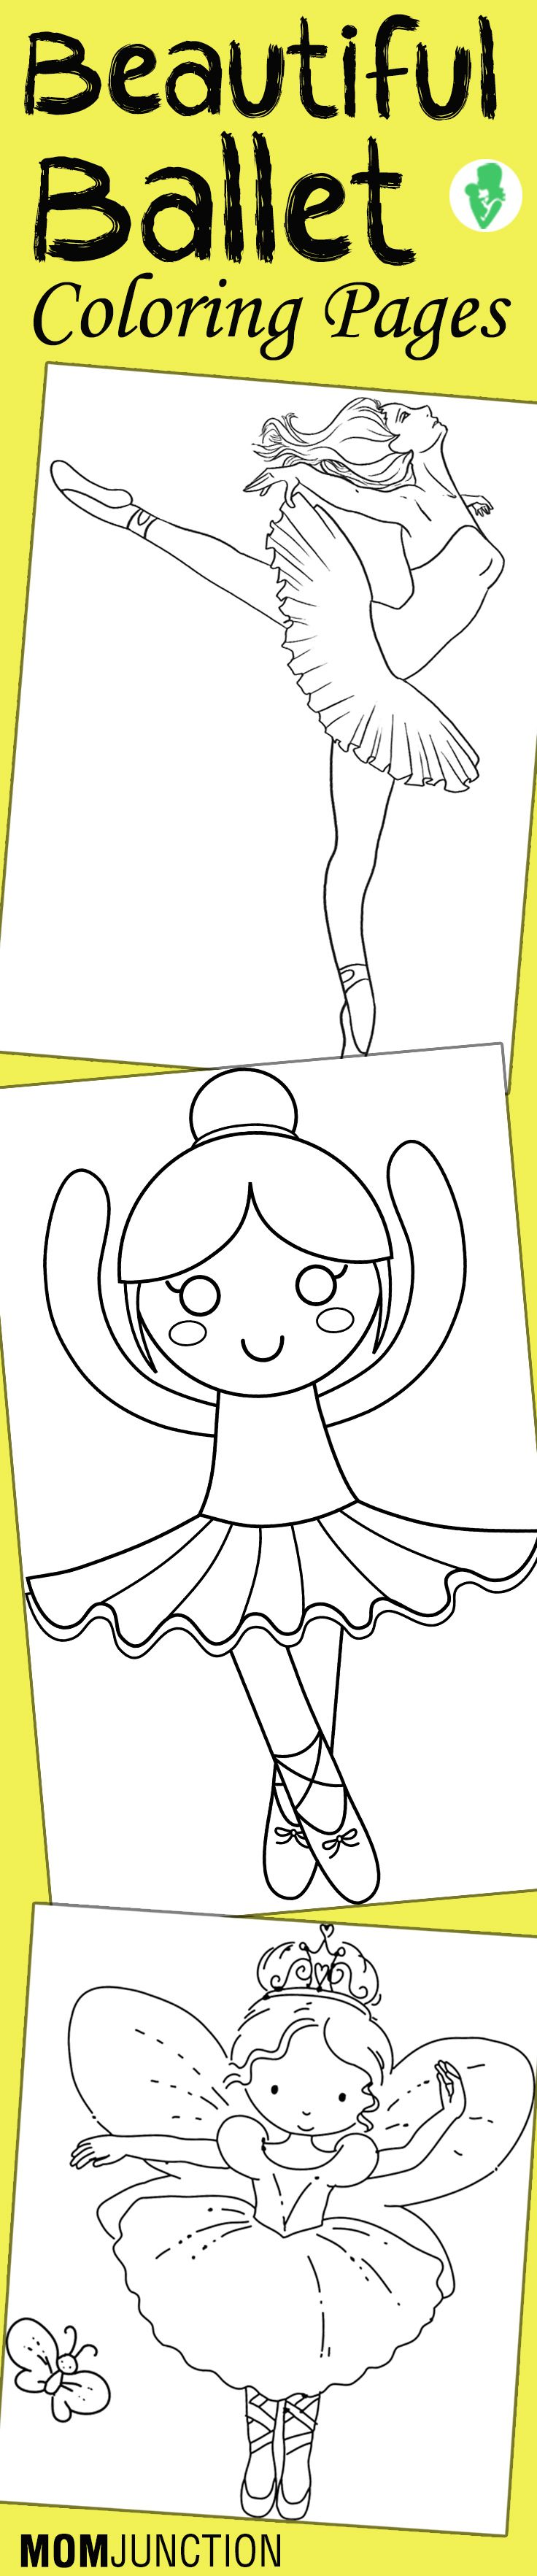 Top 10 Free Printable Beautiful Ballet Coloring Pages